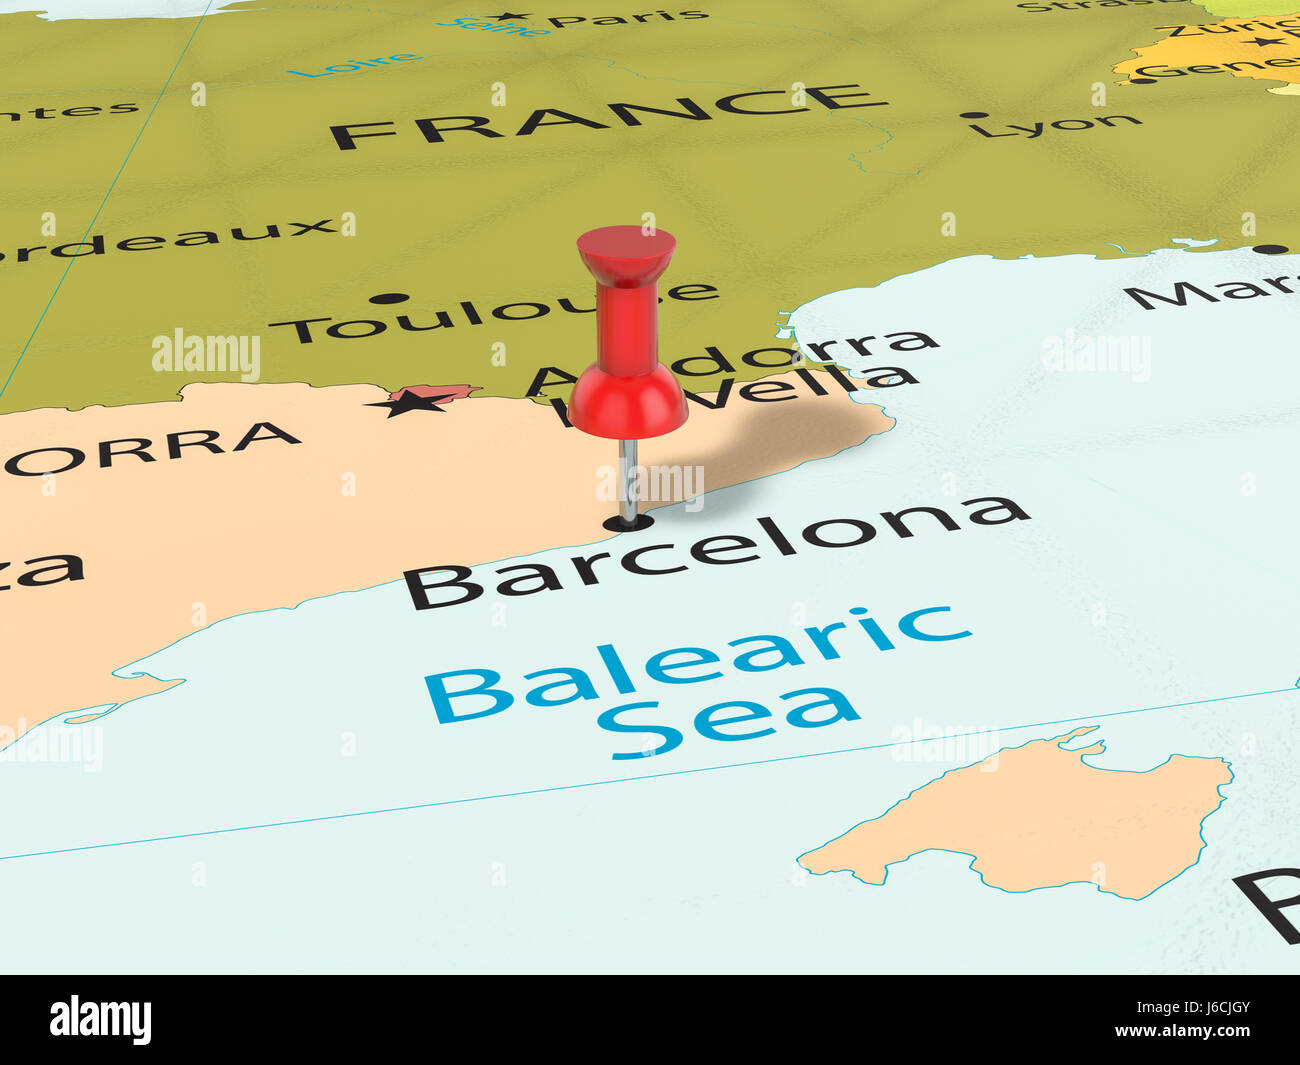 Barcelona Pinned On Map Europe Stock Photos Barcelona Pinned On